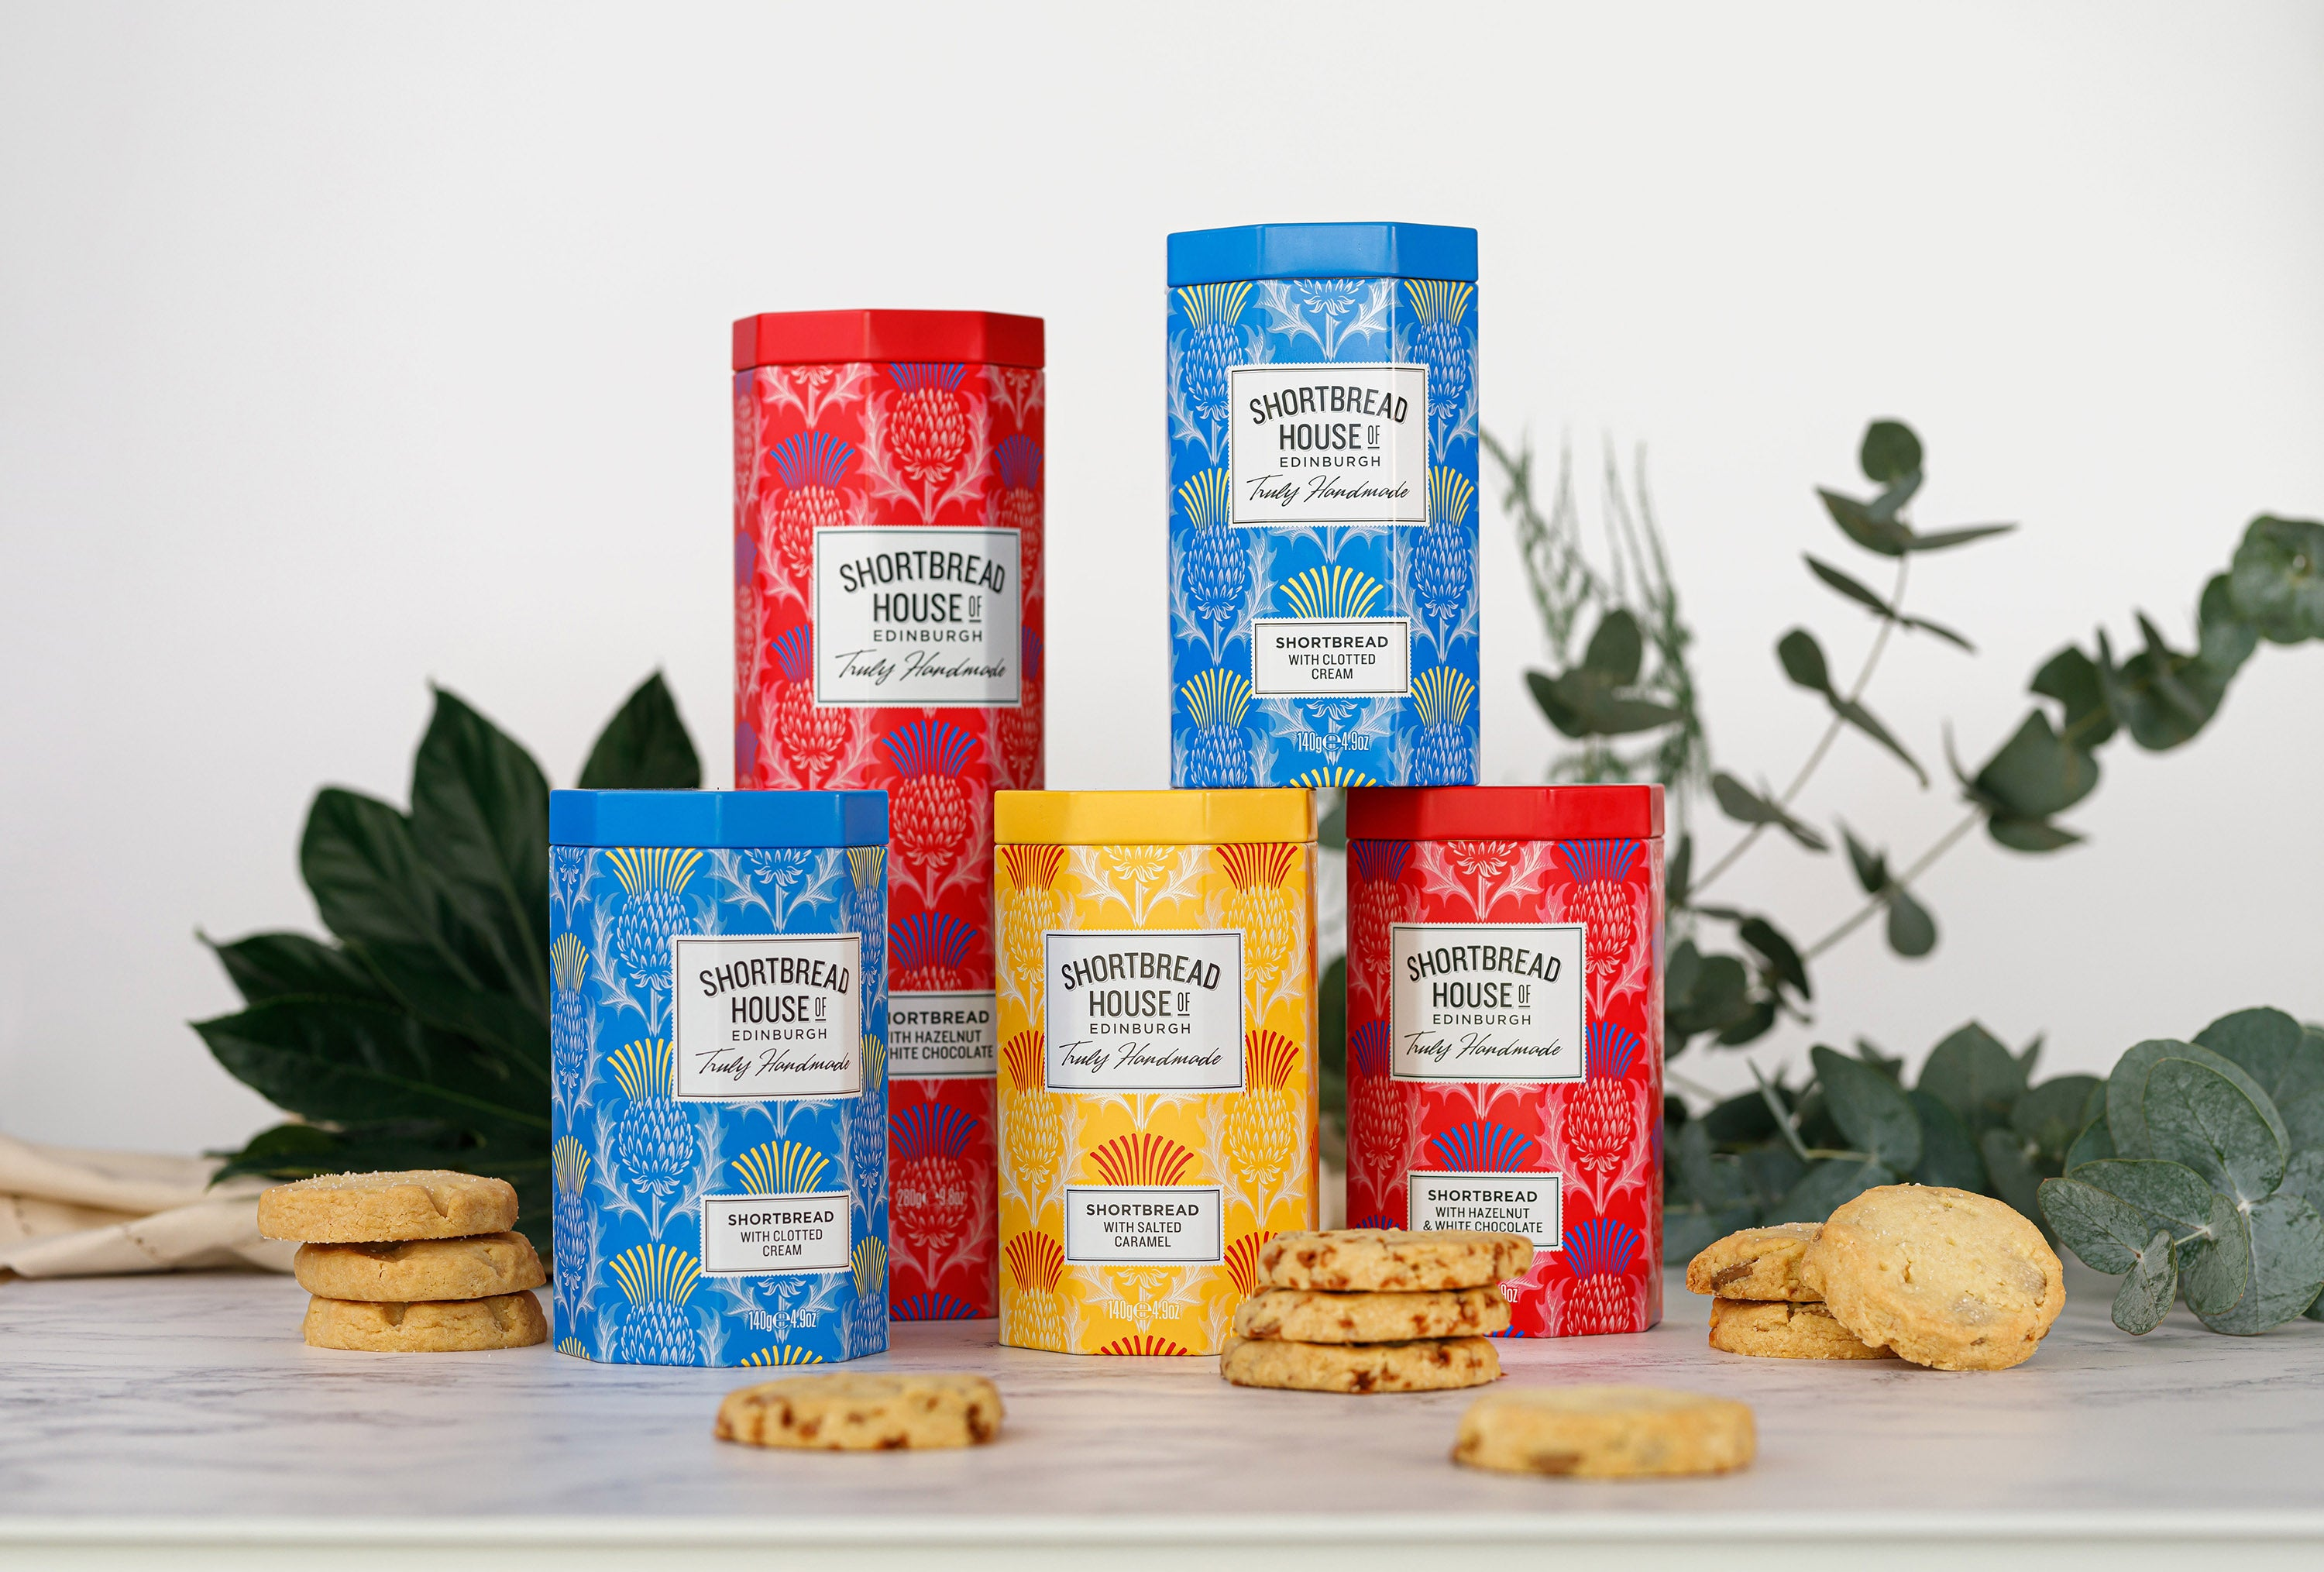 A selection of shortbread tins from the Shortbread House of Edinburgh